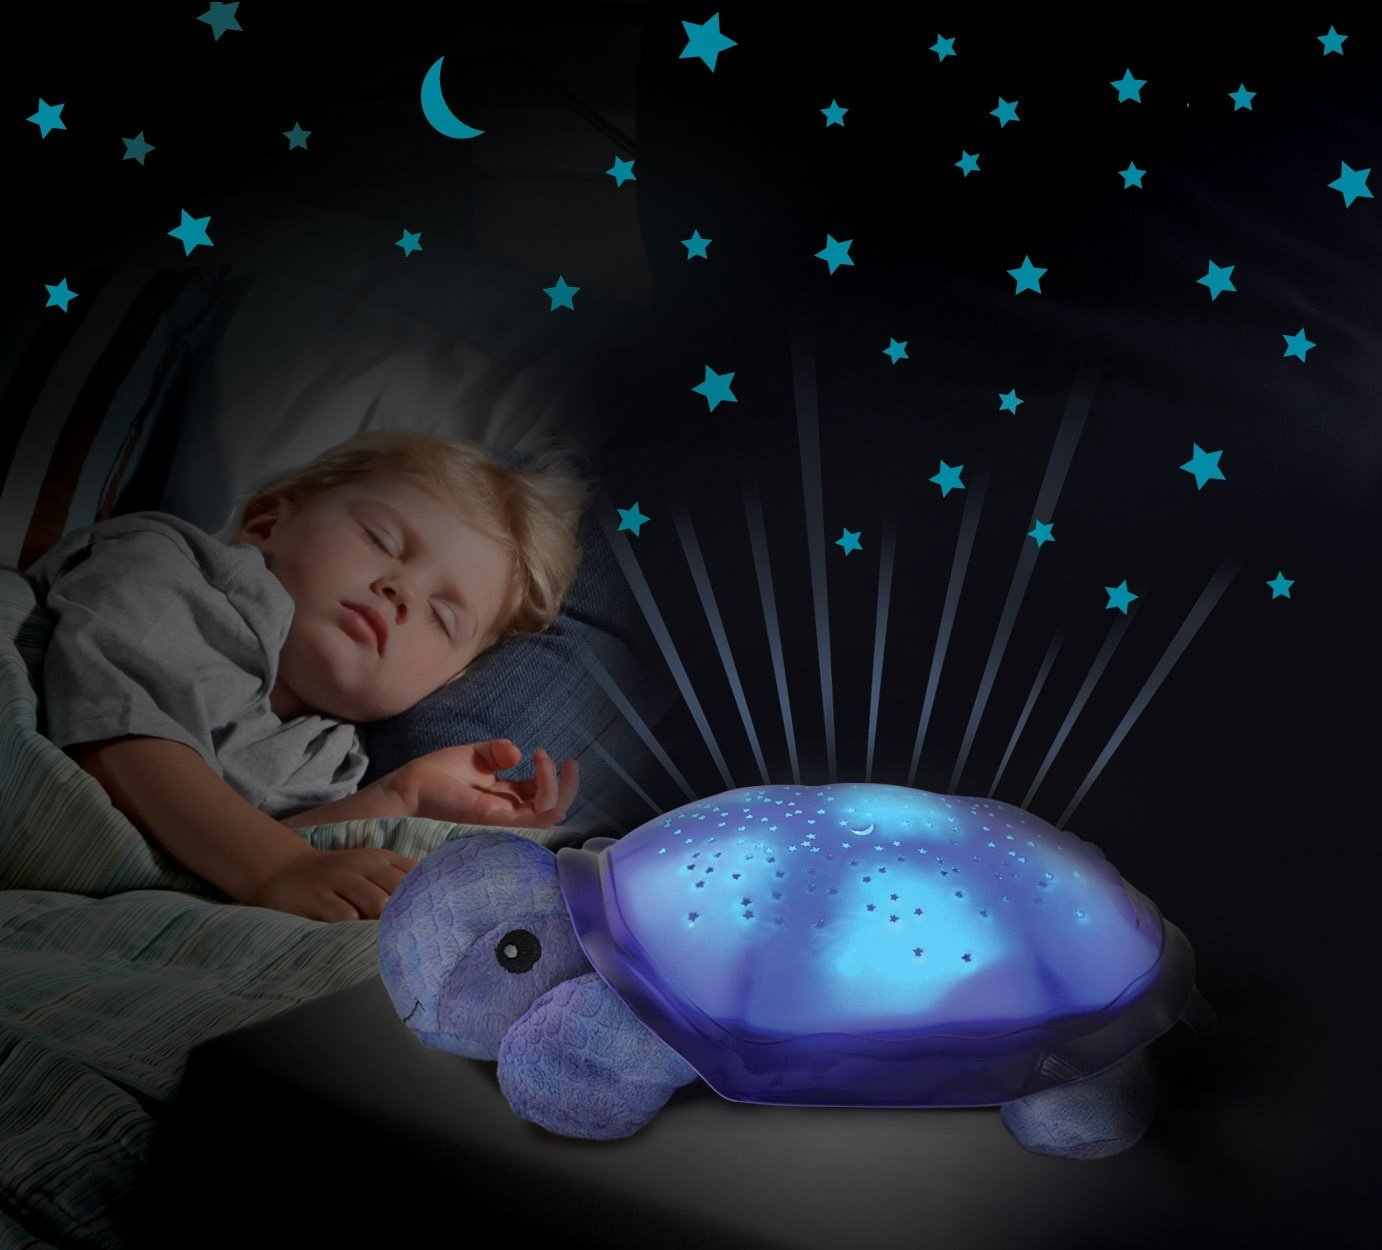 Sleep Sound Machines For Children And Babies The Sleep Hub